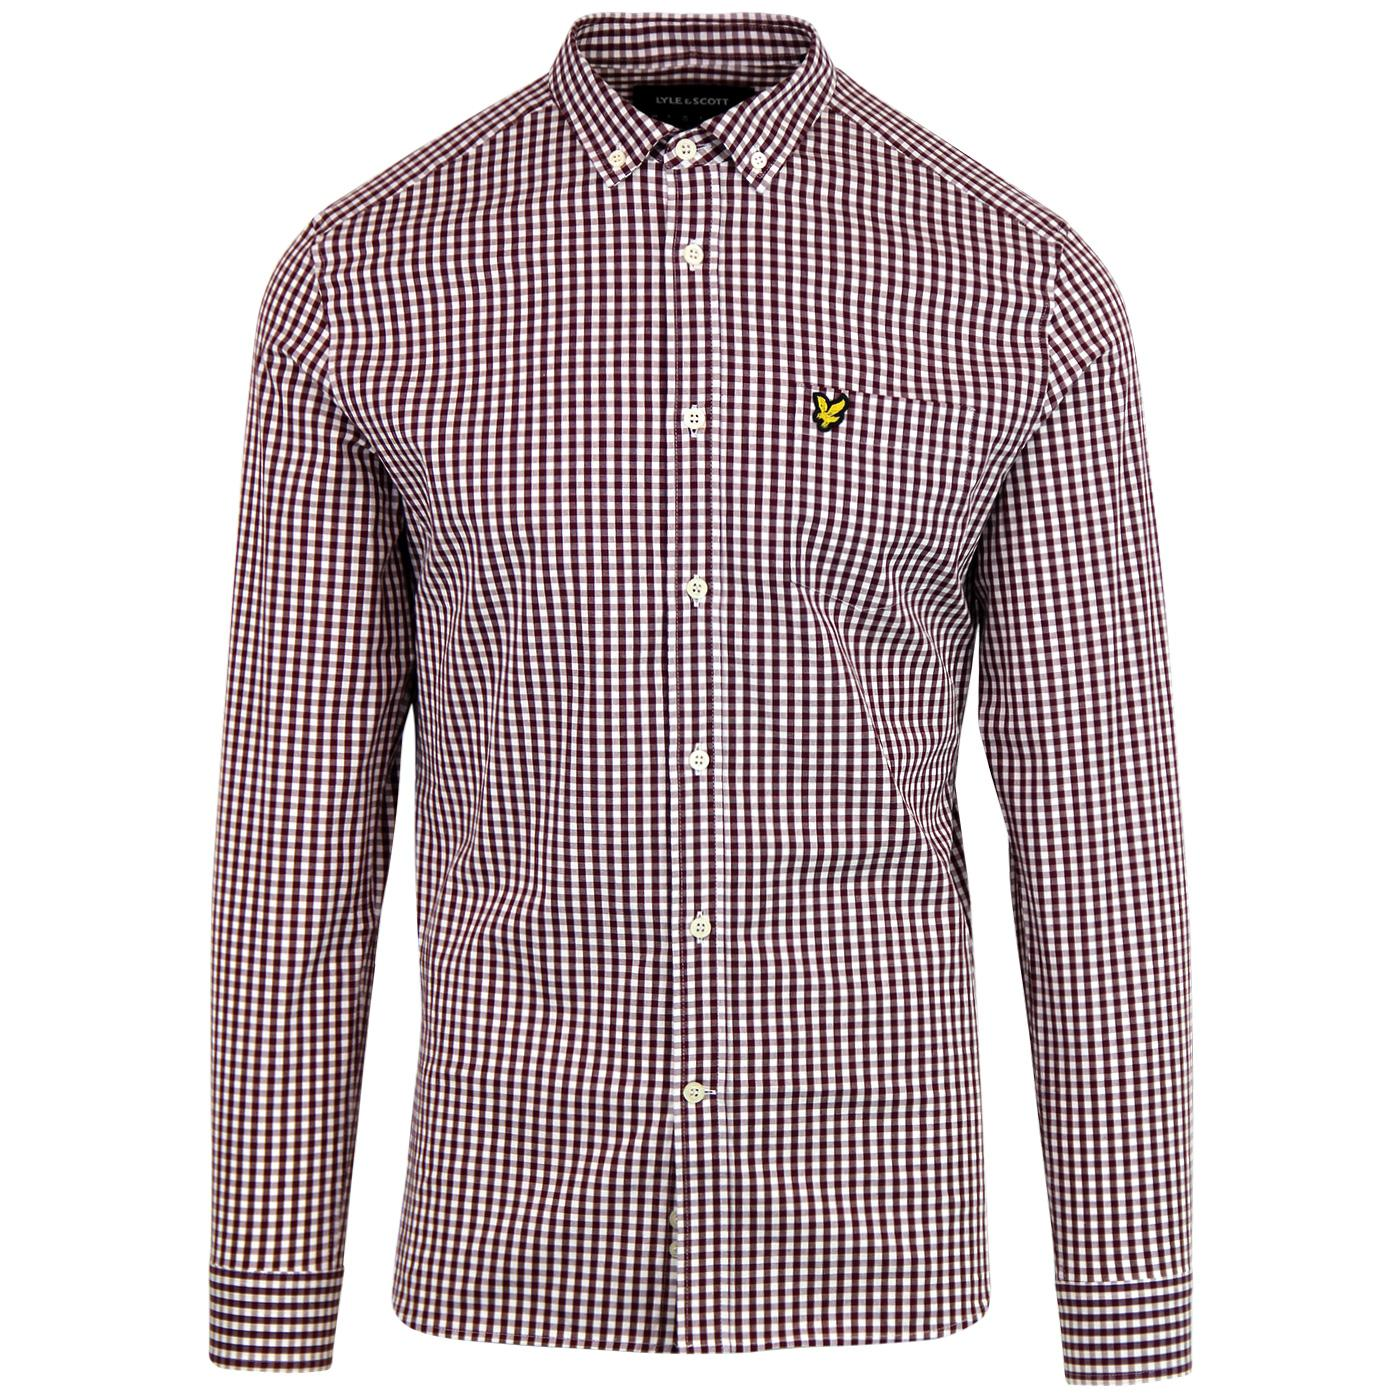 LYLE & SCOTT Mens Retro Mod Gingham Shirt - Claret